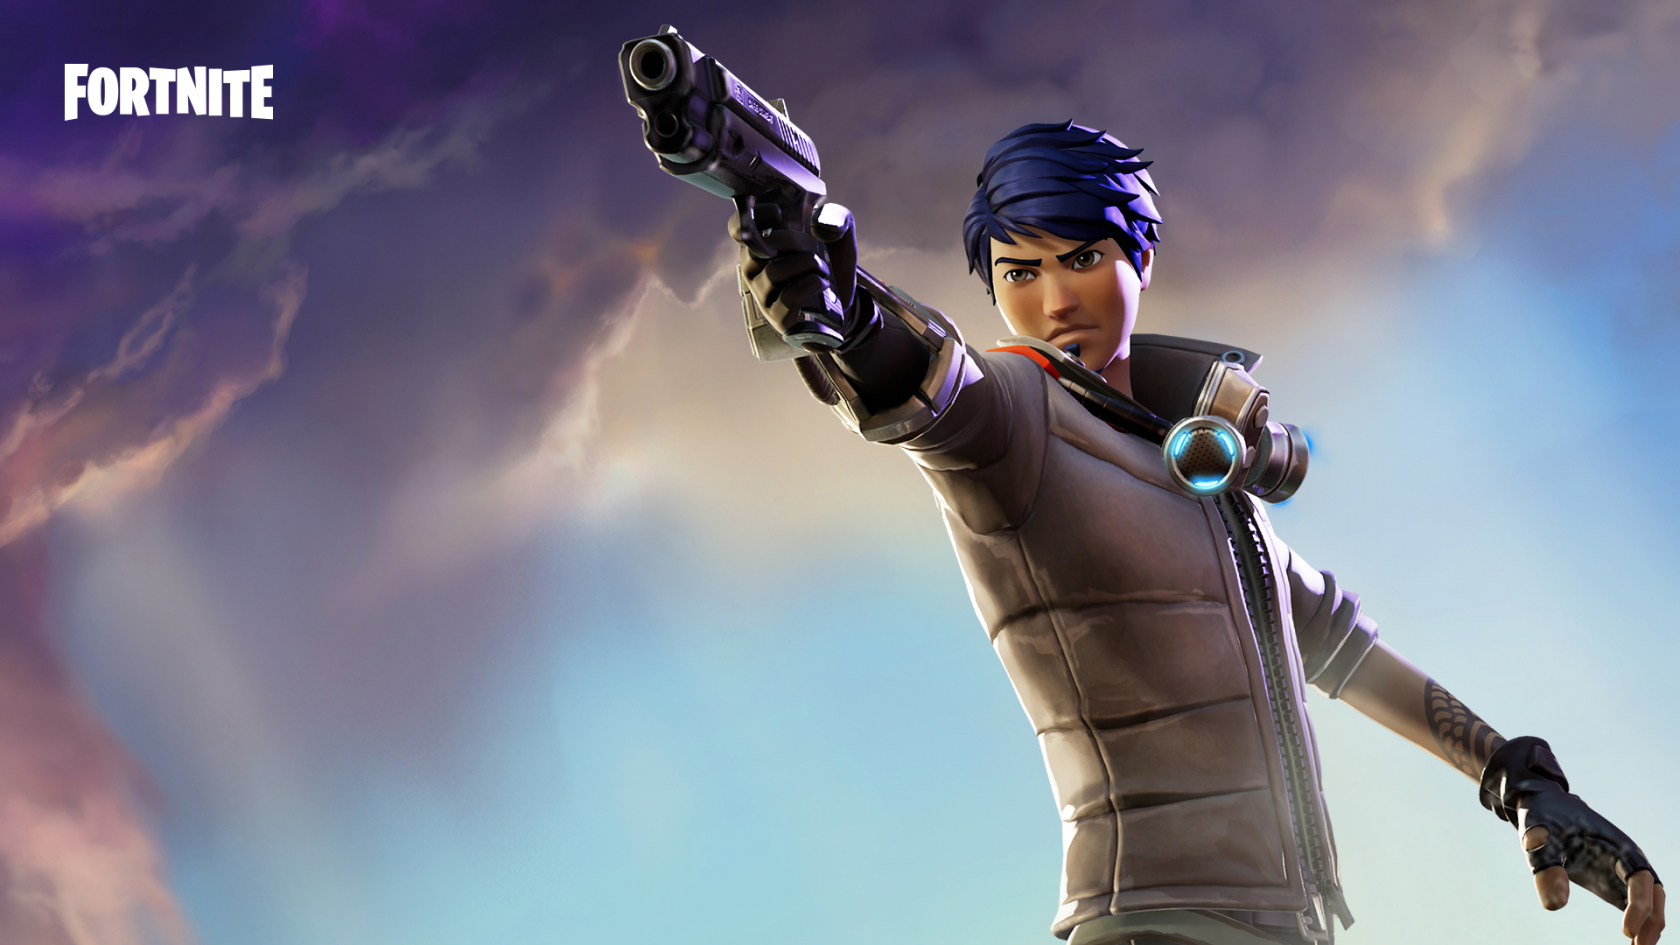 Epic Games briefly enabled cross-play on Fortnite between PlayStation and Xbox